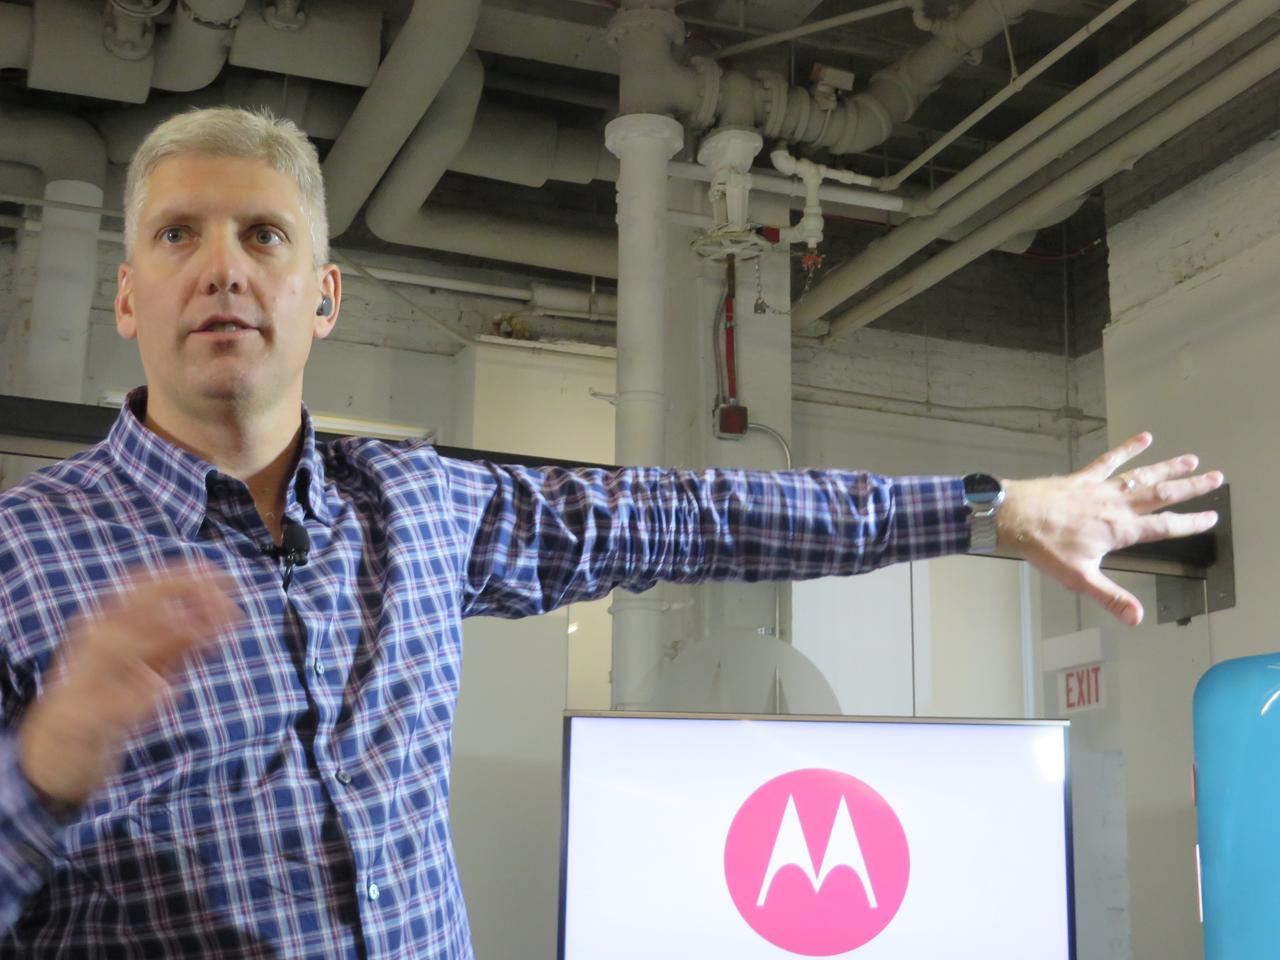 Motorola Mobility President and COO Rick Osterloh shows off a Moto 360